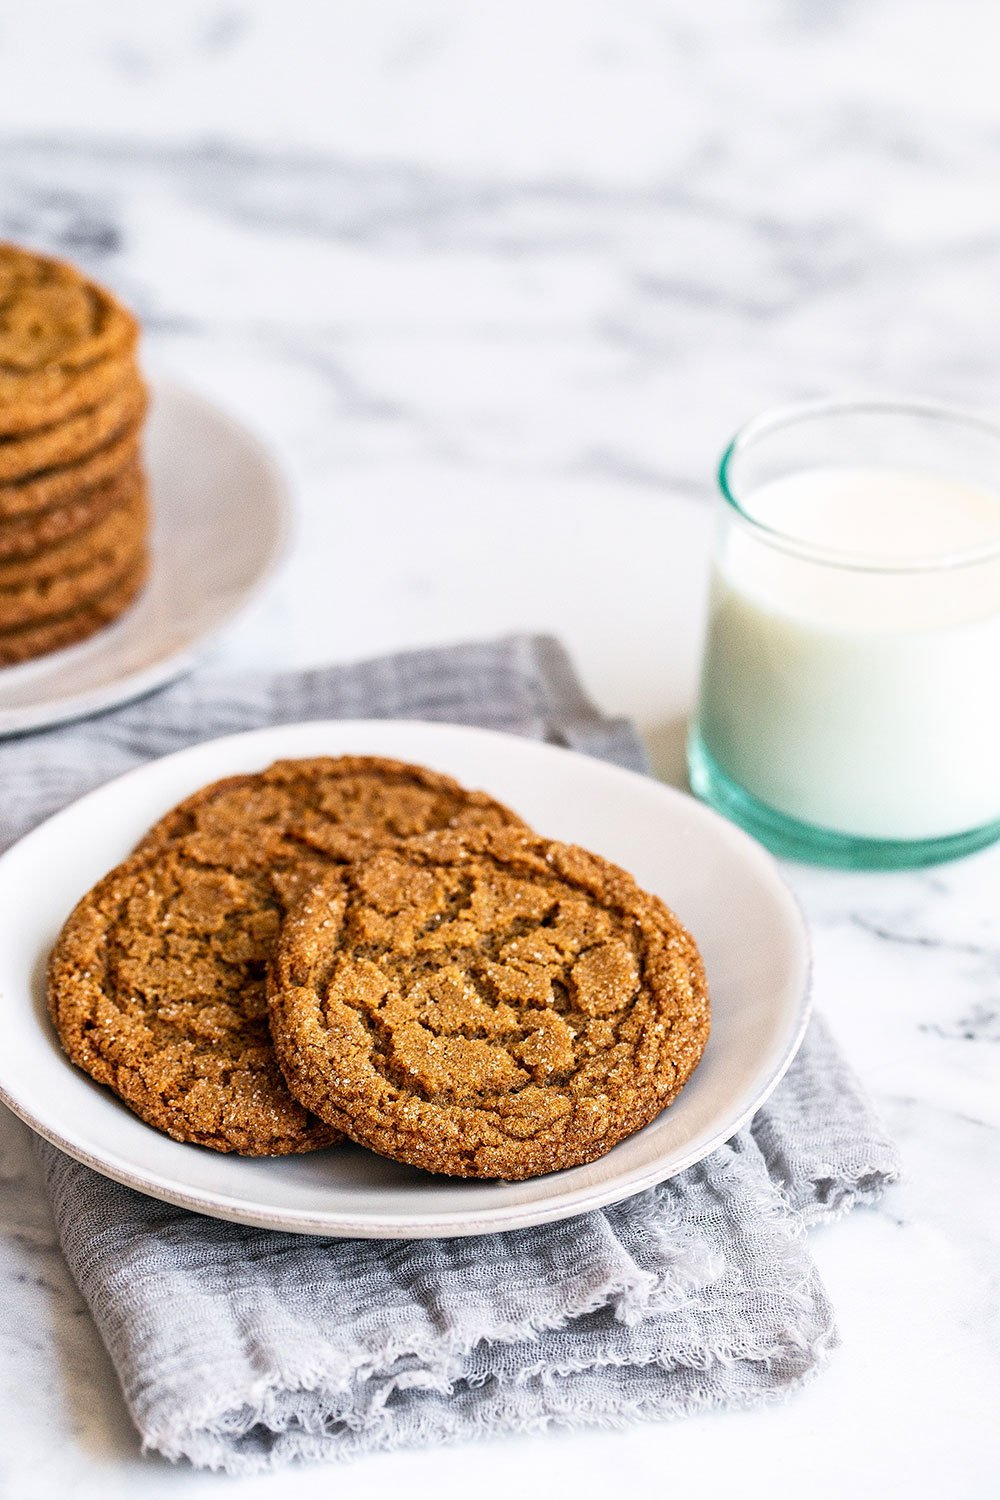 Crunchy gingersnaps on a plate with a glass of milk